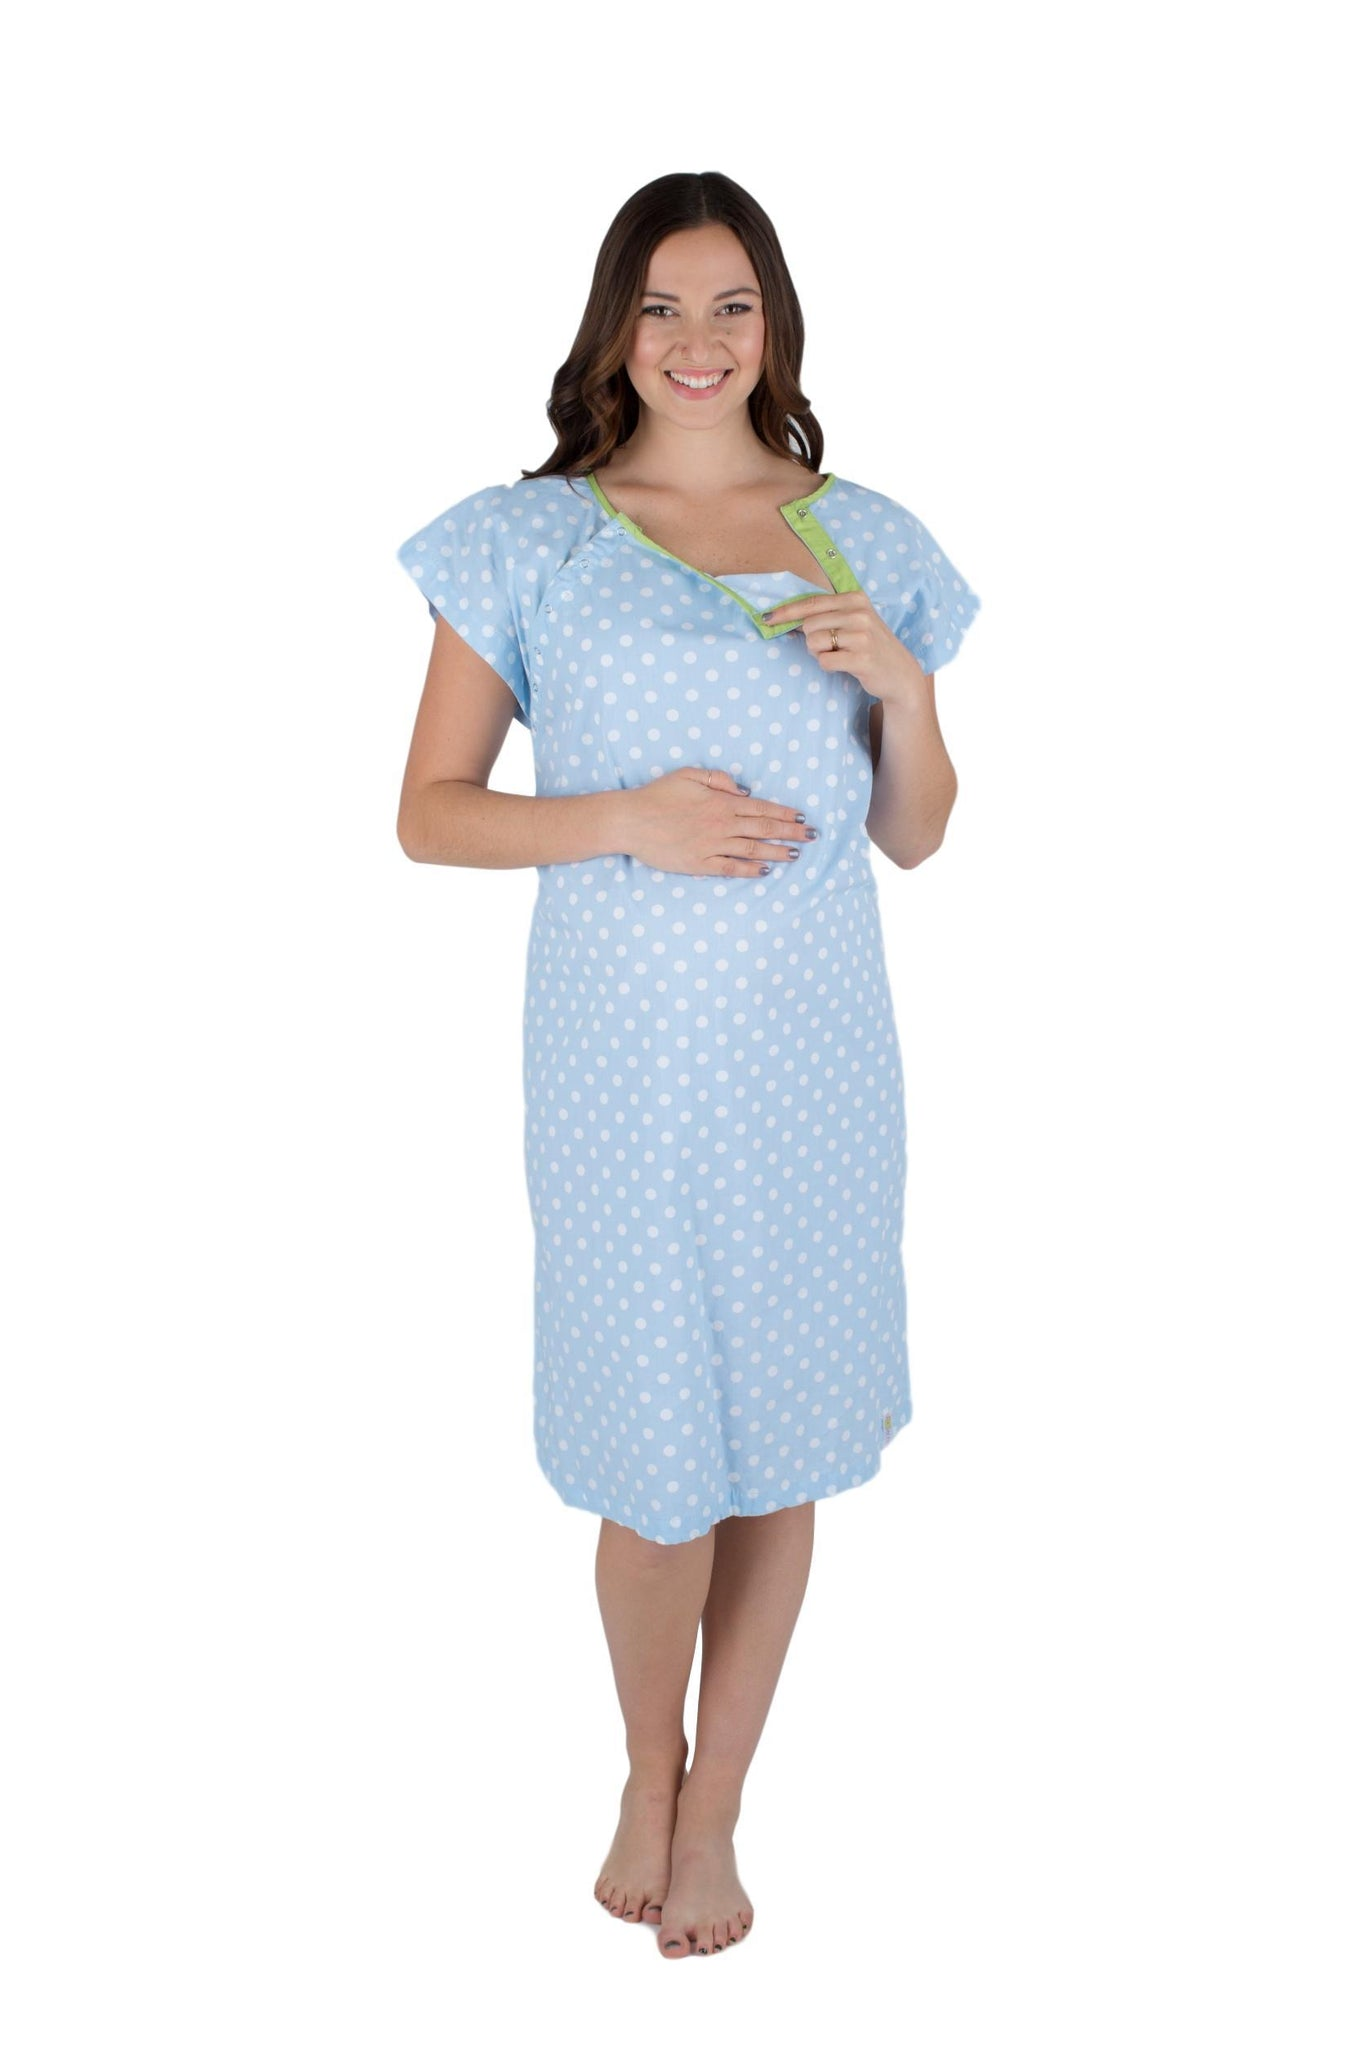 Nicole Gownie Baby Be Mine Maternity Delivery Labor Hospital Gown ...